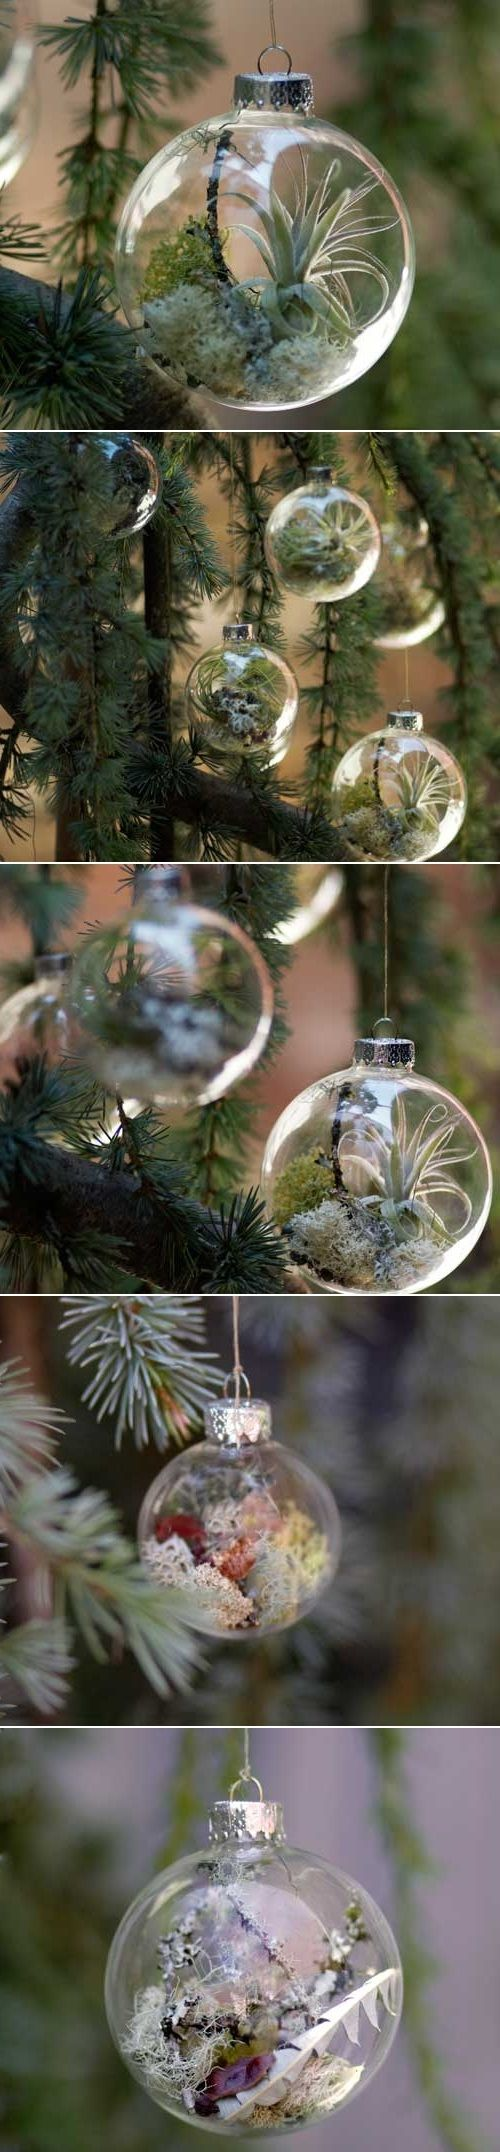 DIY Ornaments with Living Plants.